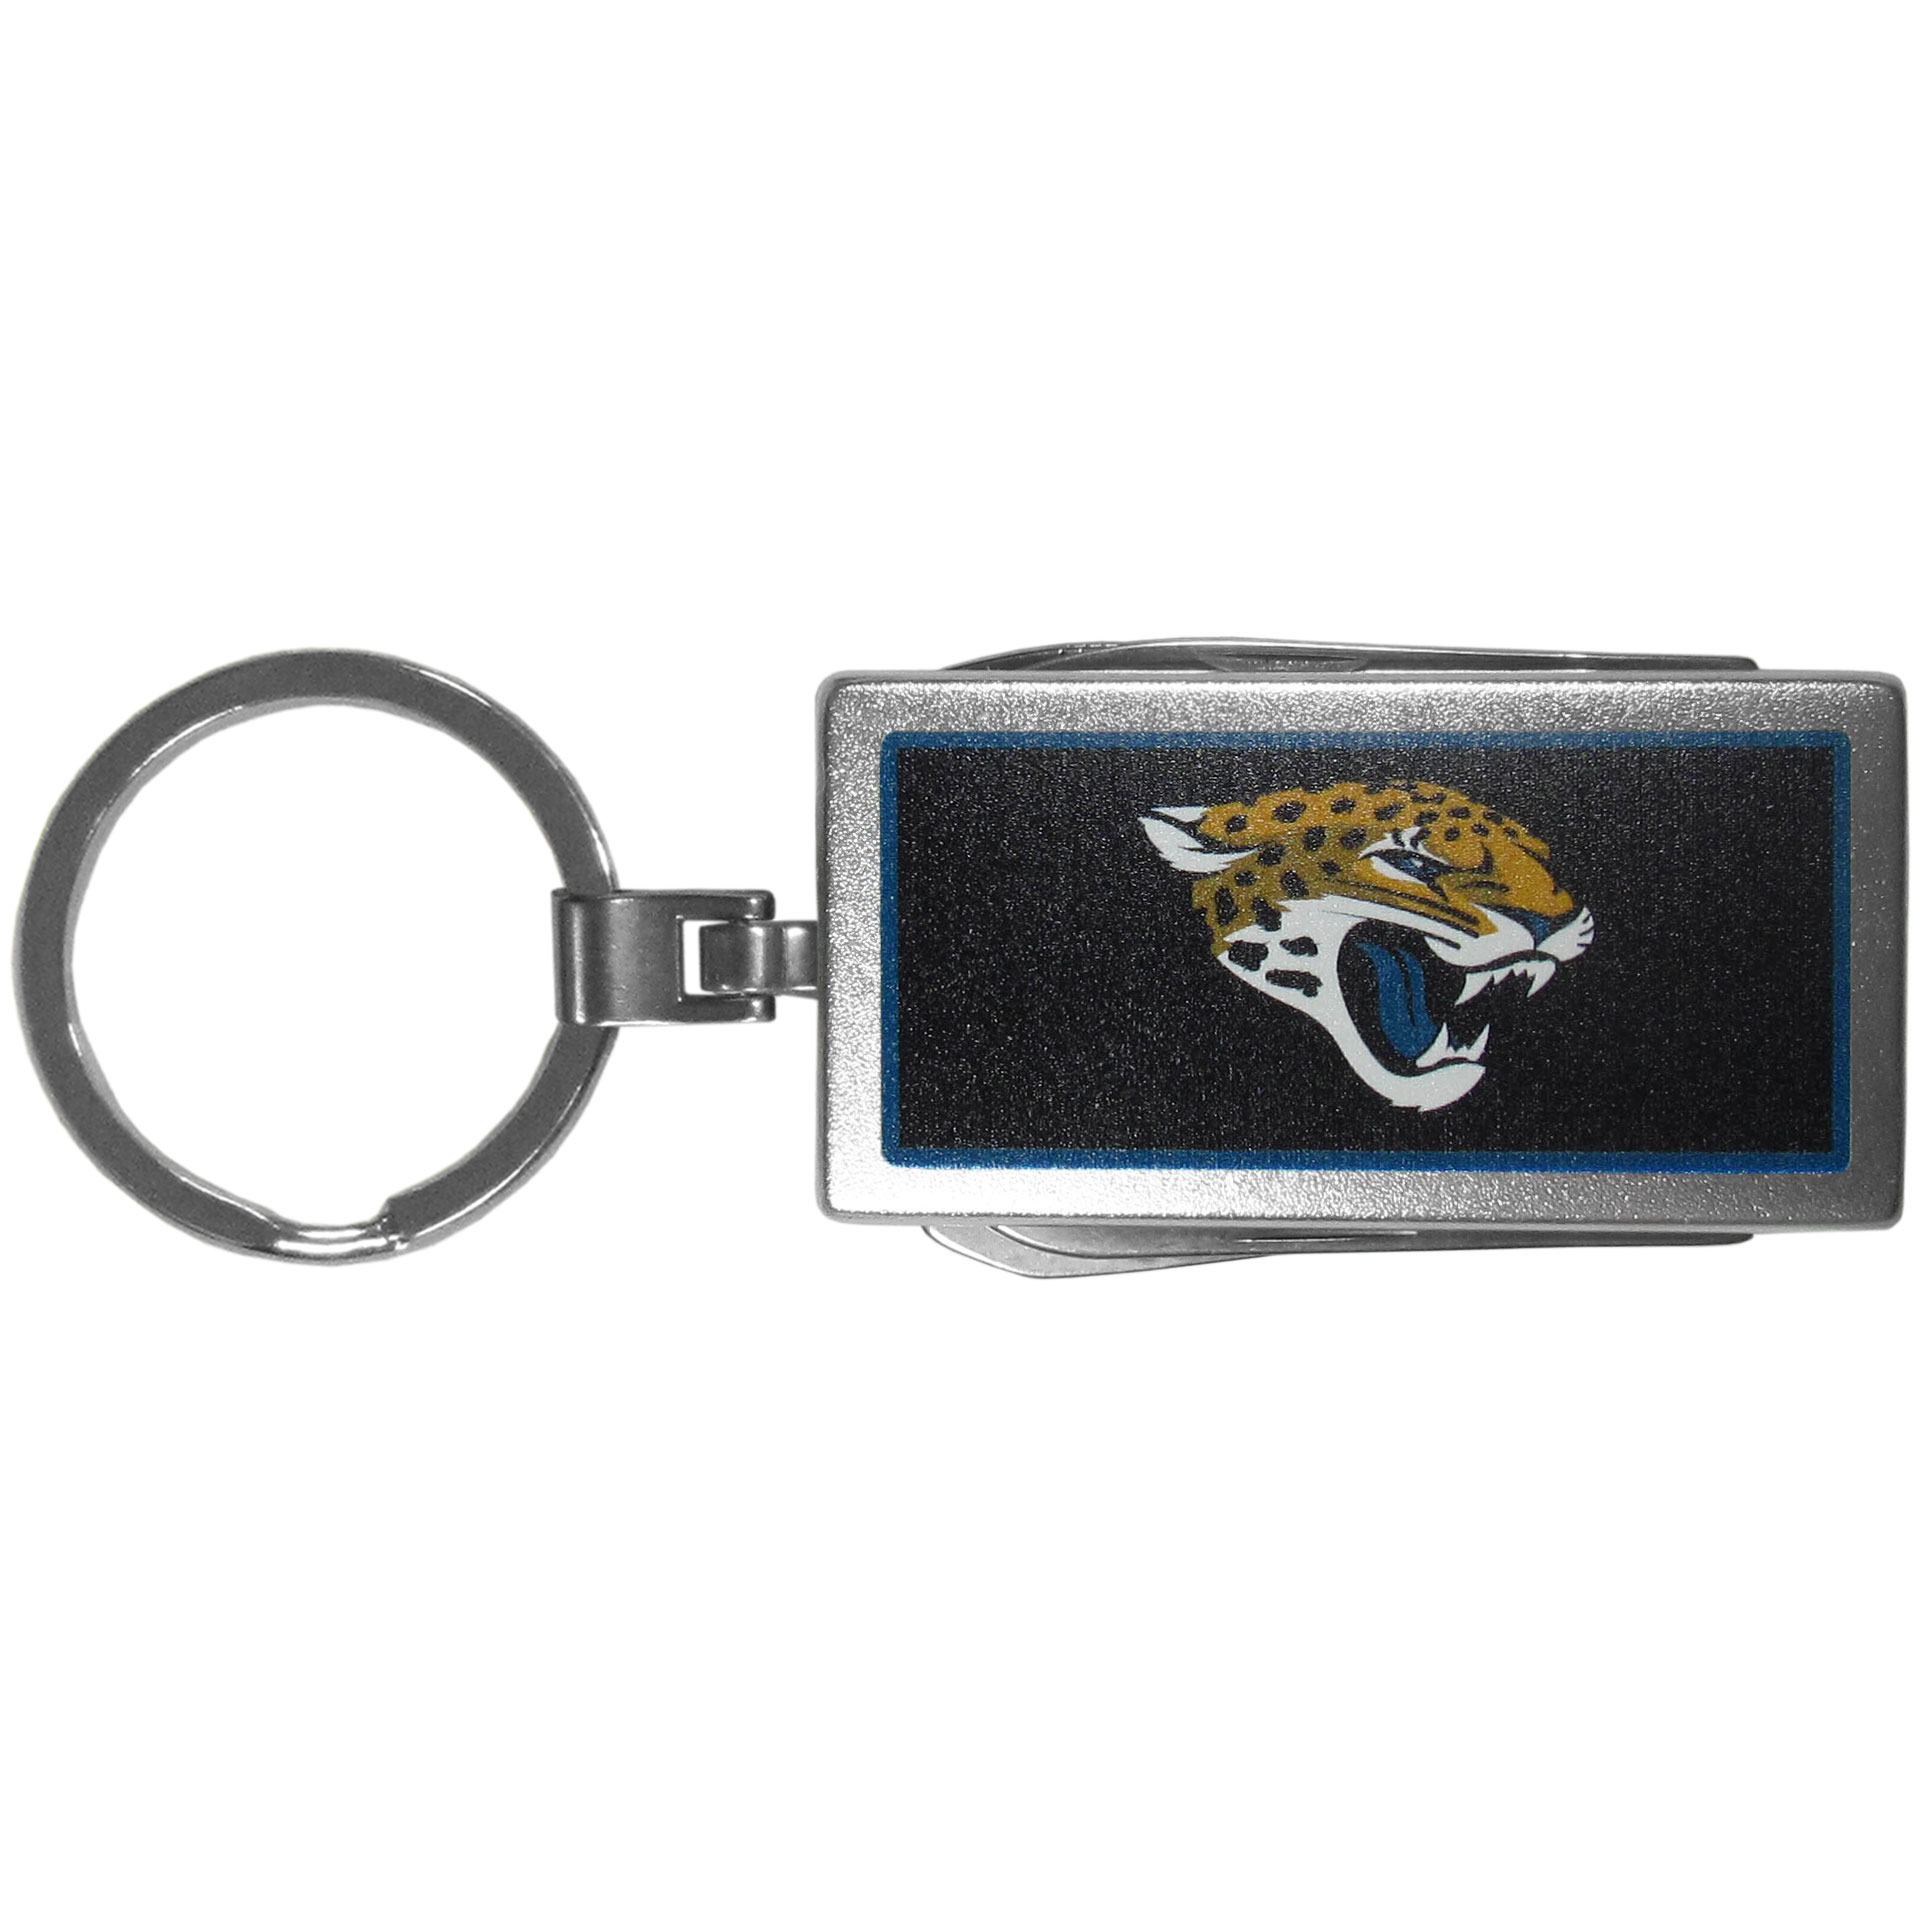 Jacksonville Jaguars Multi-tool Key Chain, Logo - Be the hero at the tailgate, camping, or on a Friday night with your Jacksonville Jaguars Multi-Tool Keychain which comes complete with bottle opener, scissors, knife, nail file and screw driver. Be it opening a package or a beverage Siskiyou's Multi-Tool Keychain goes wherever your keys do. The keychain hangs at 4 inches long when closed.